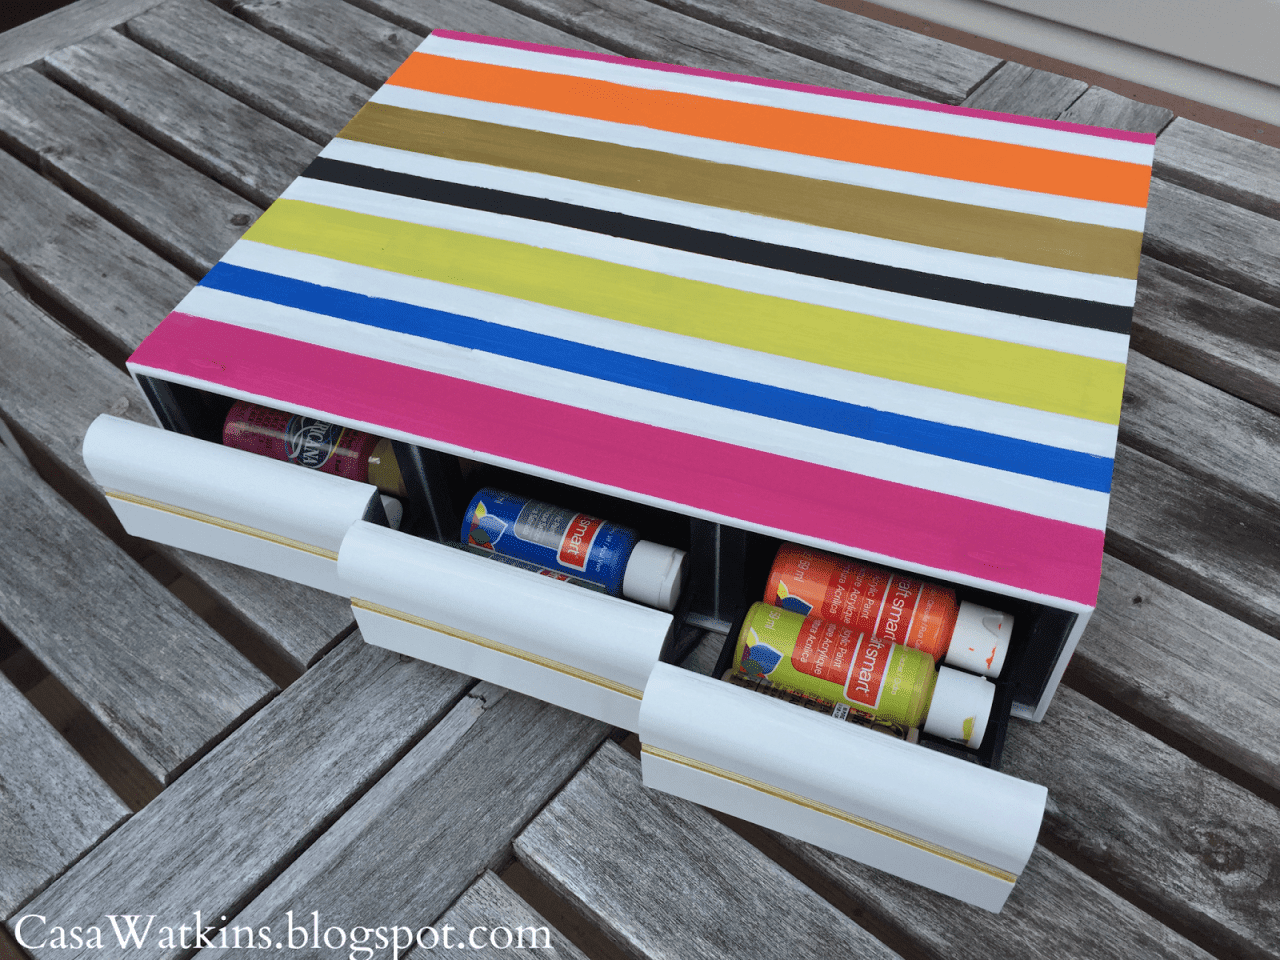 upcycled cassette tape holder used to store puffy paint